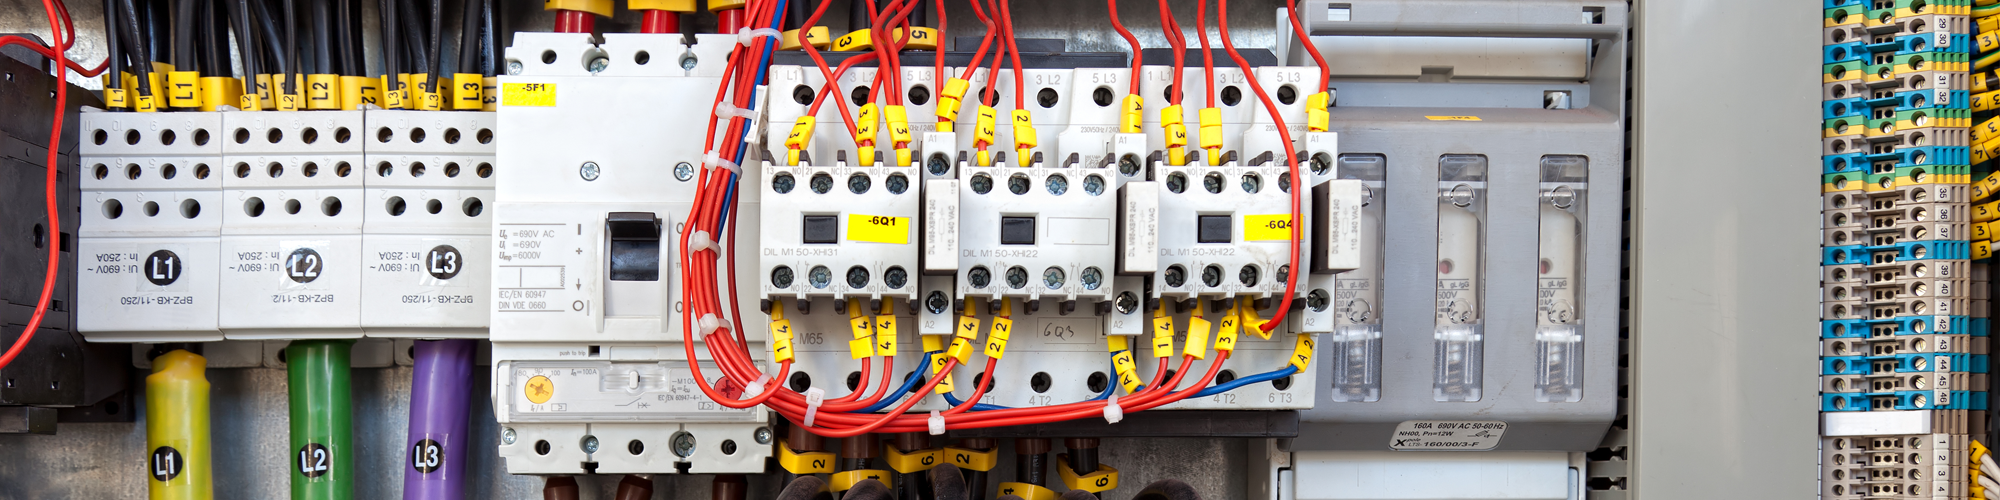 Electrical Wiring Installation in North Aurora IL Get More Outlets